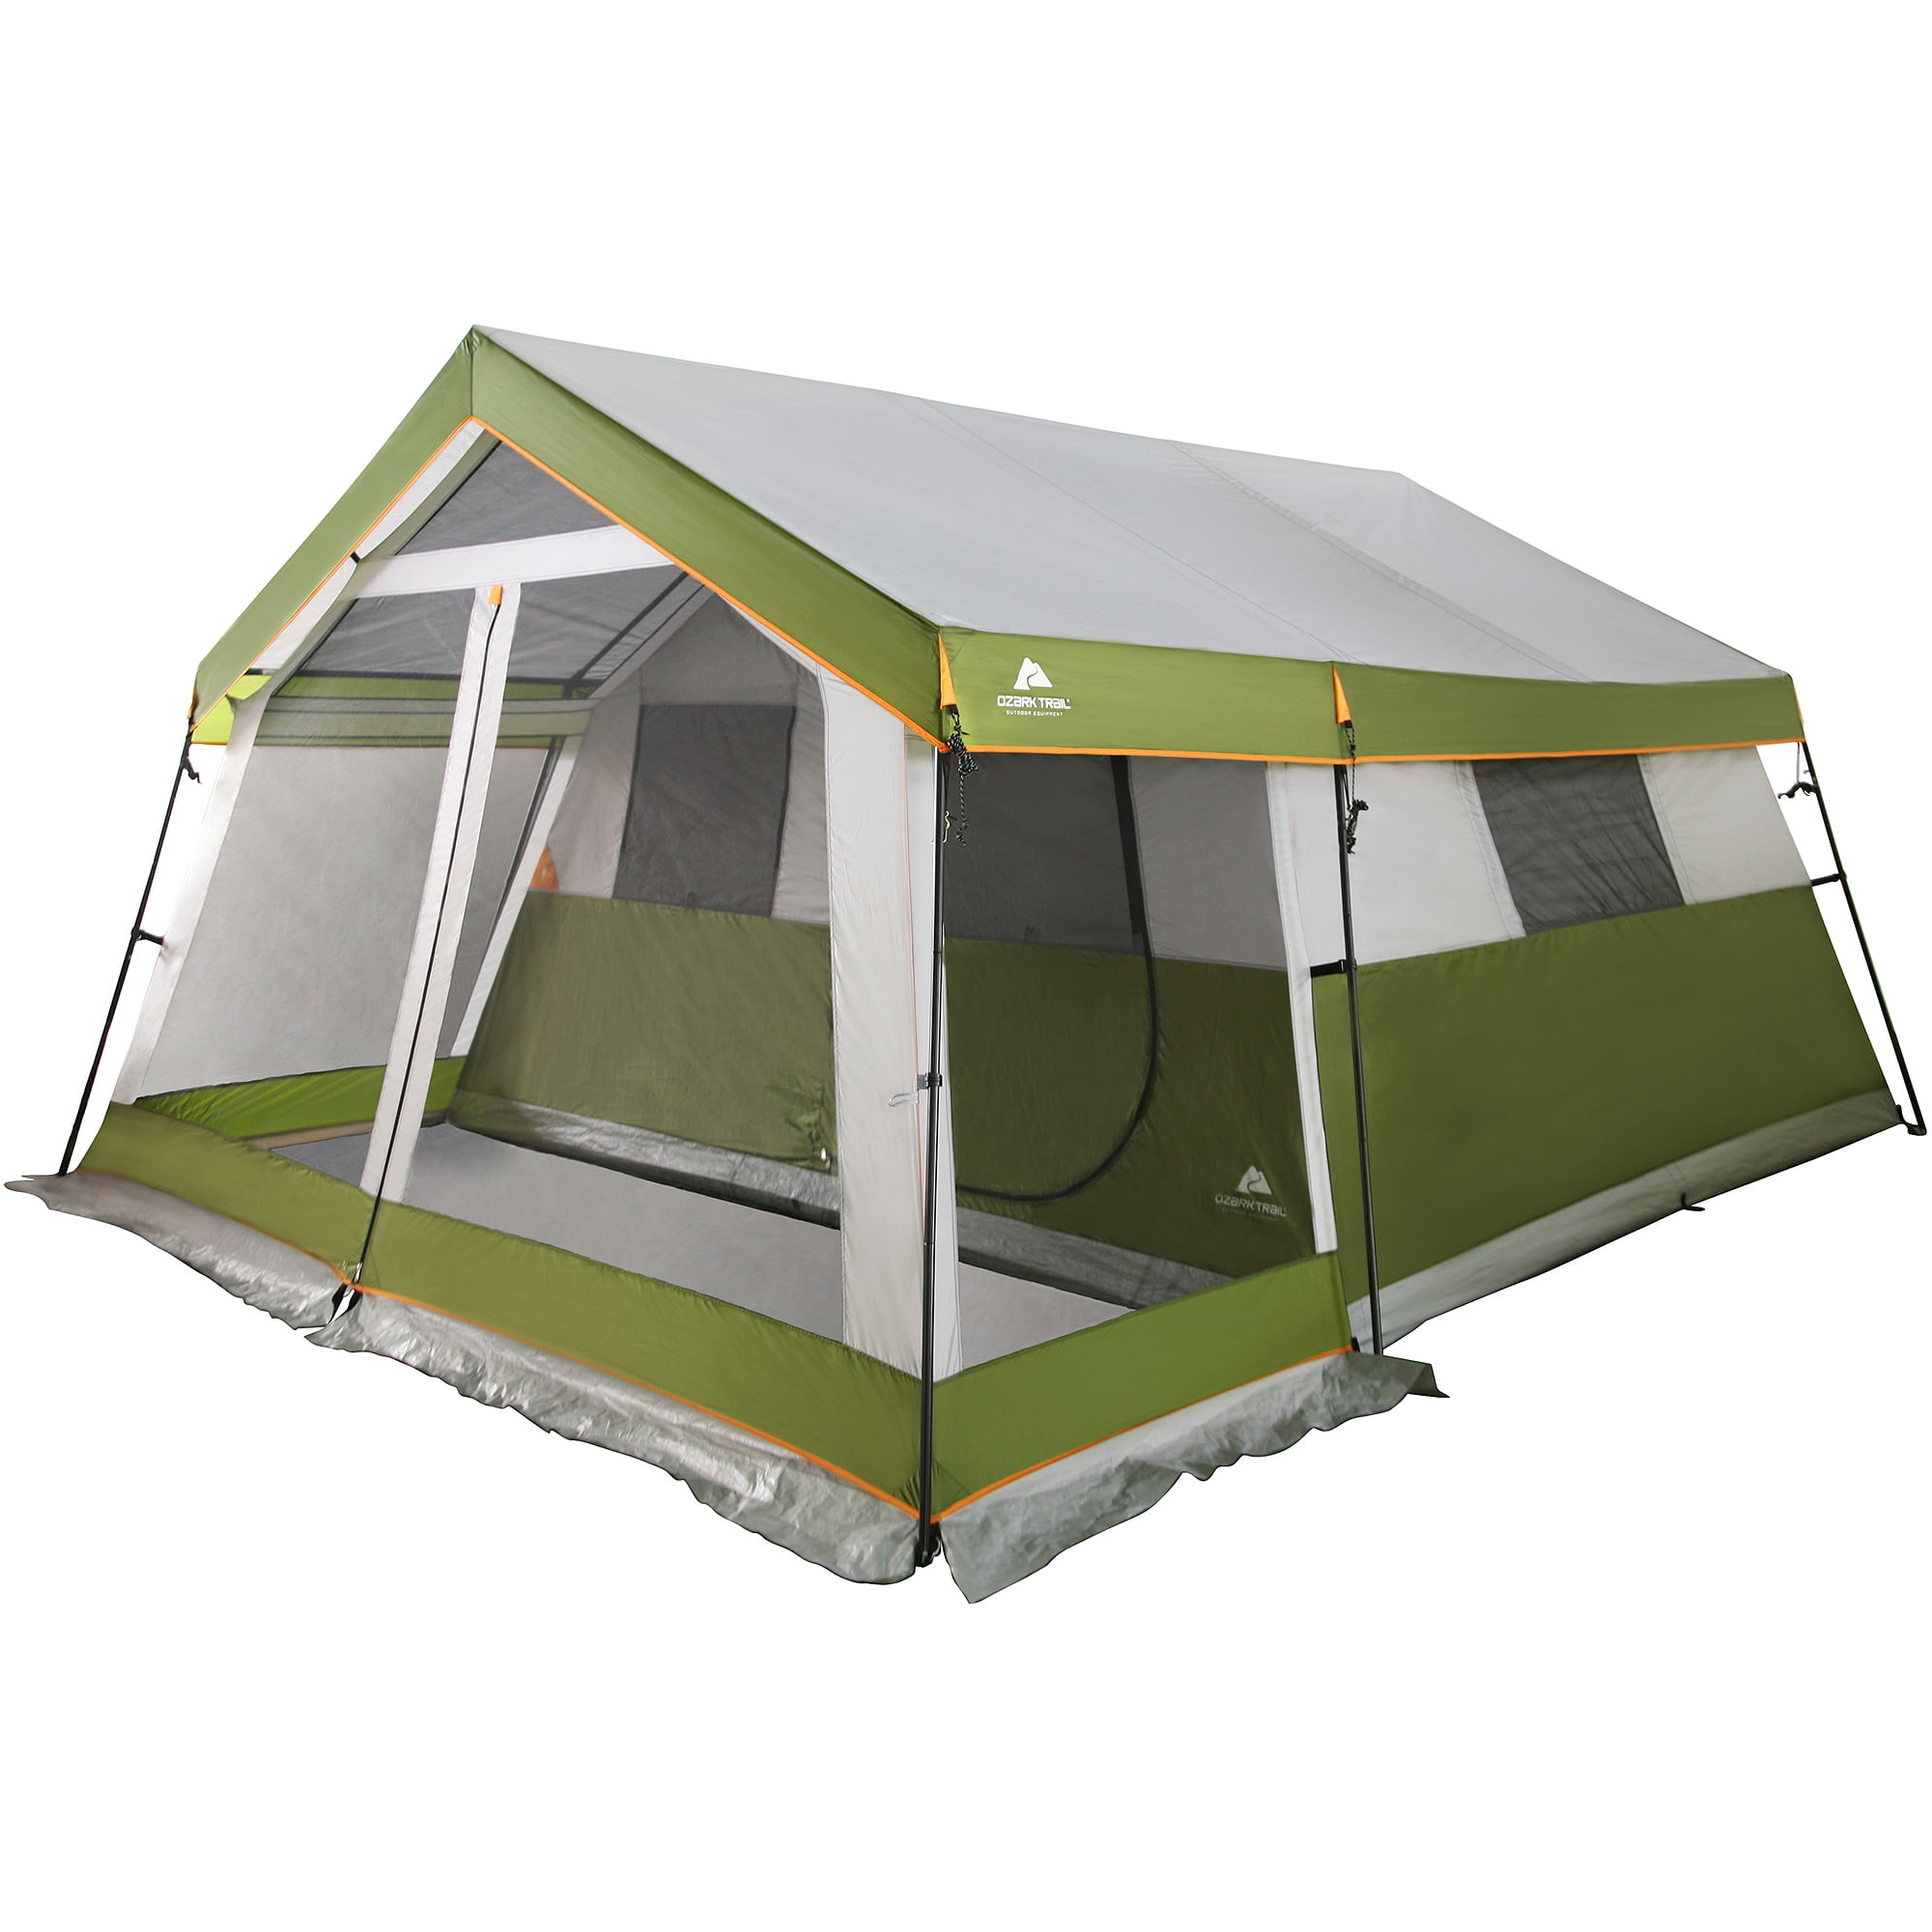 Ozark Trail 8-Person Family Cabin Tent with Screen Porch  sc 1 st  Walmart & Screened Tents - Walmart.com